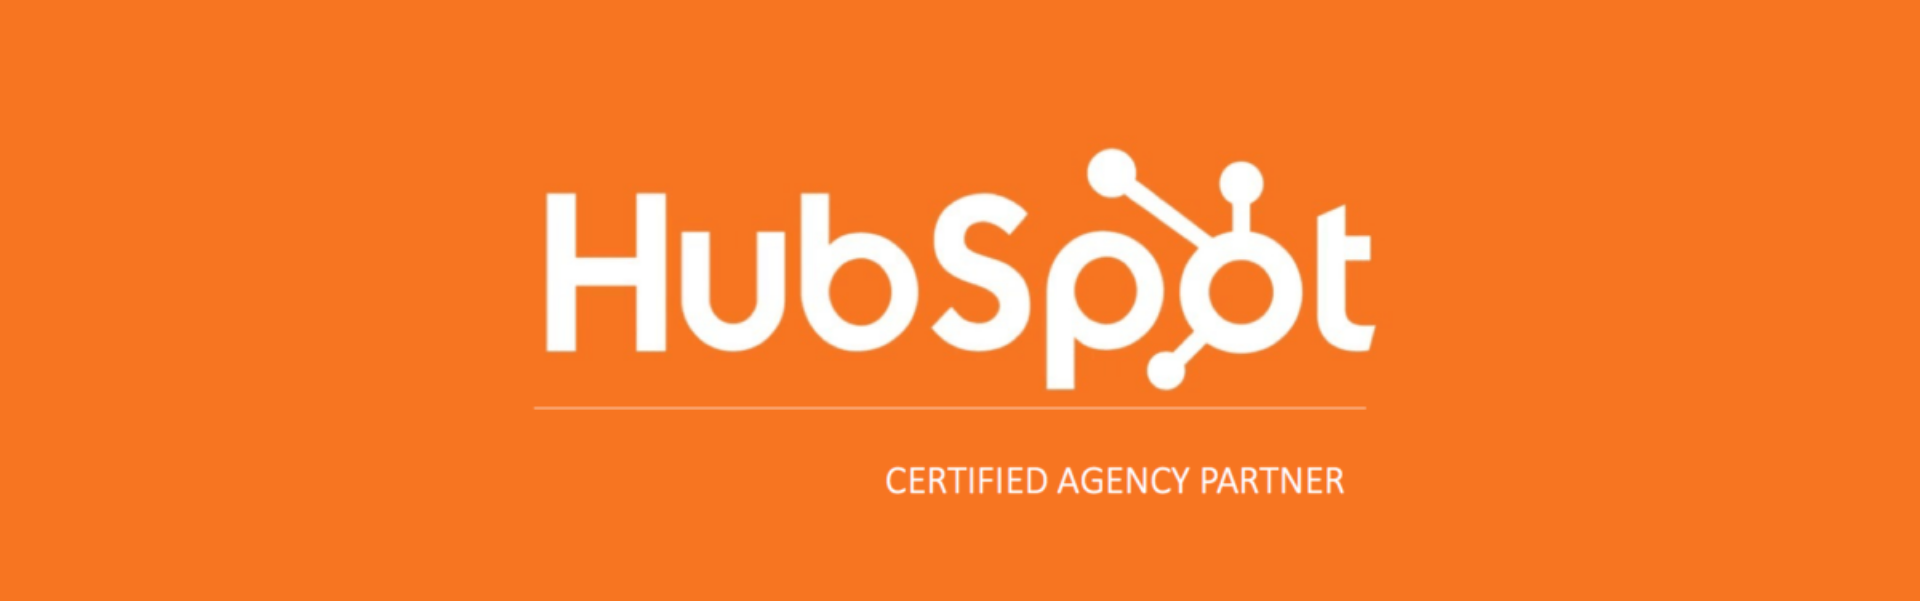 Hubspot - Inbound Marketing